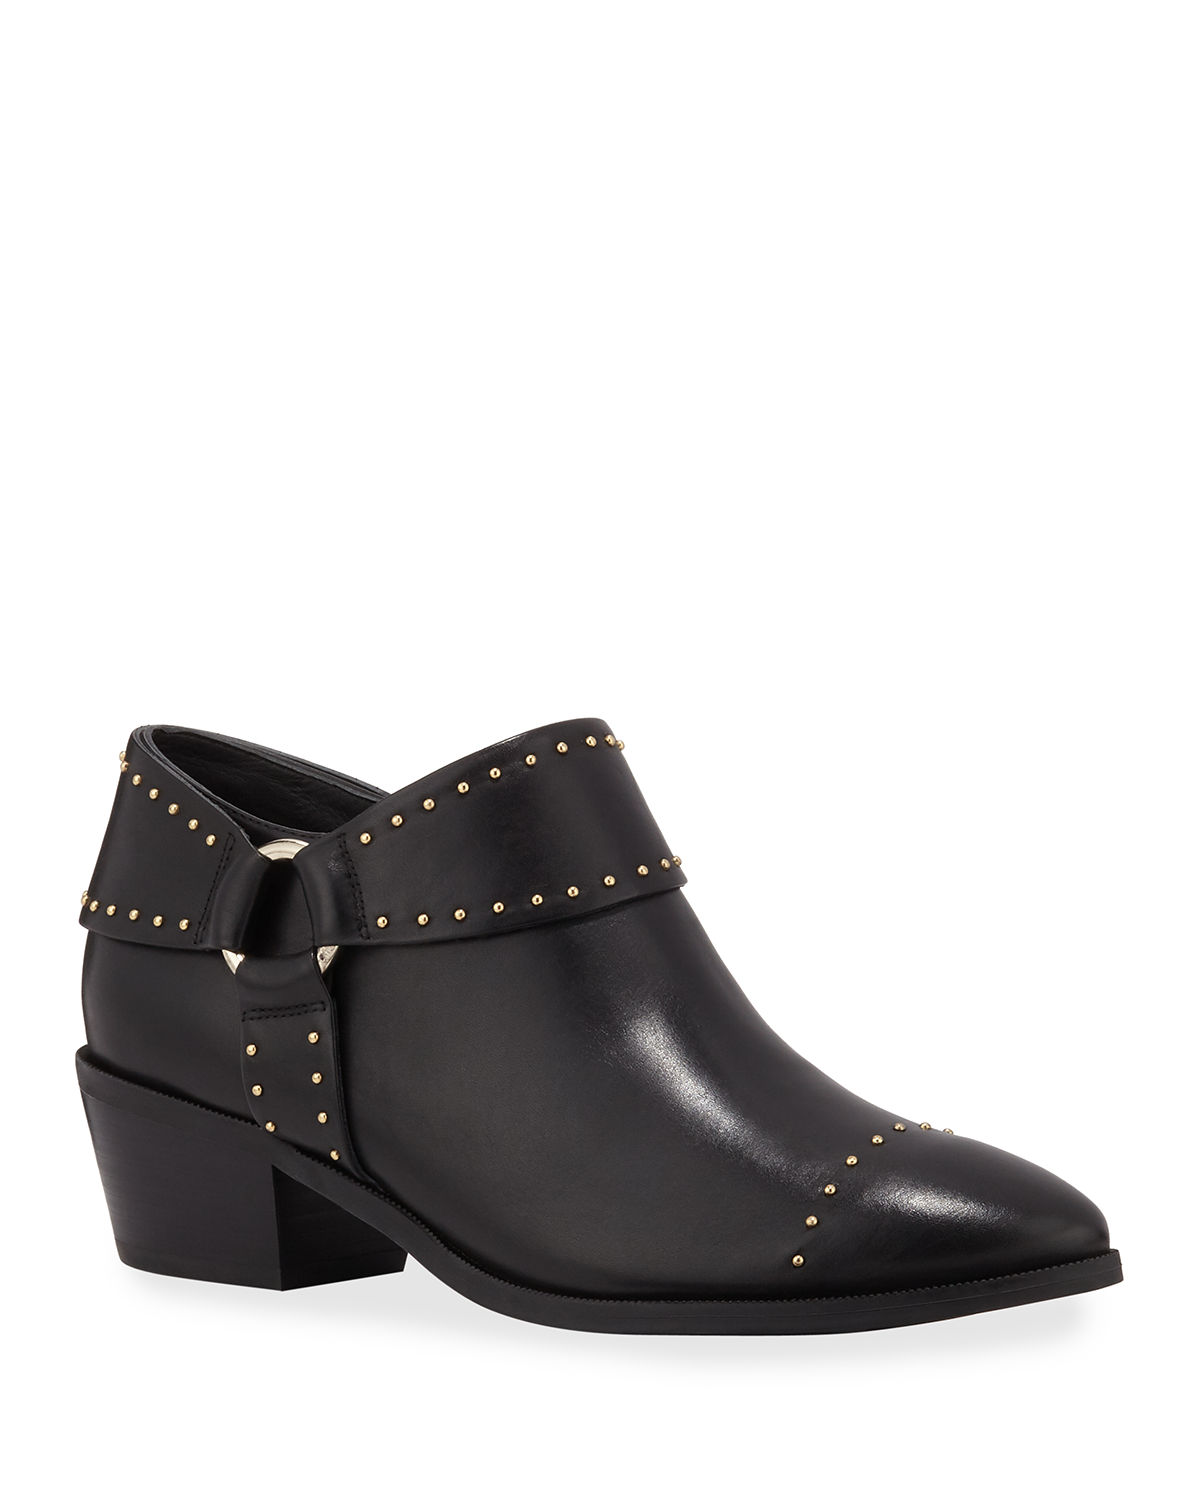 Sage Studded Leather Harness Booties